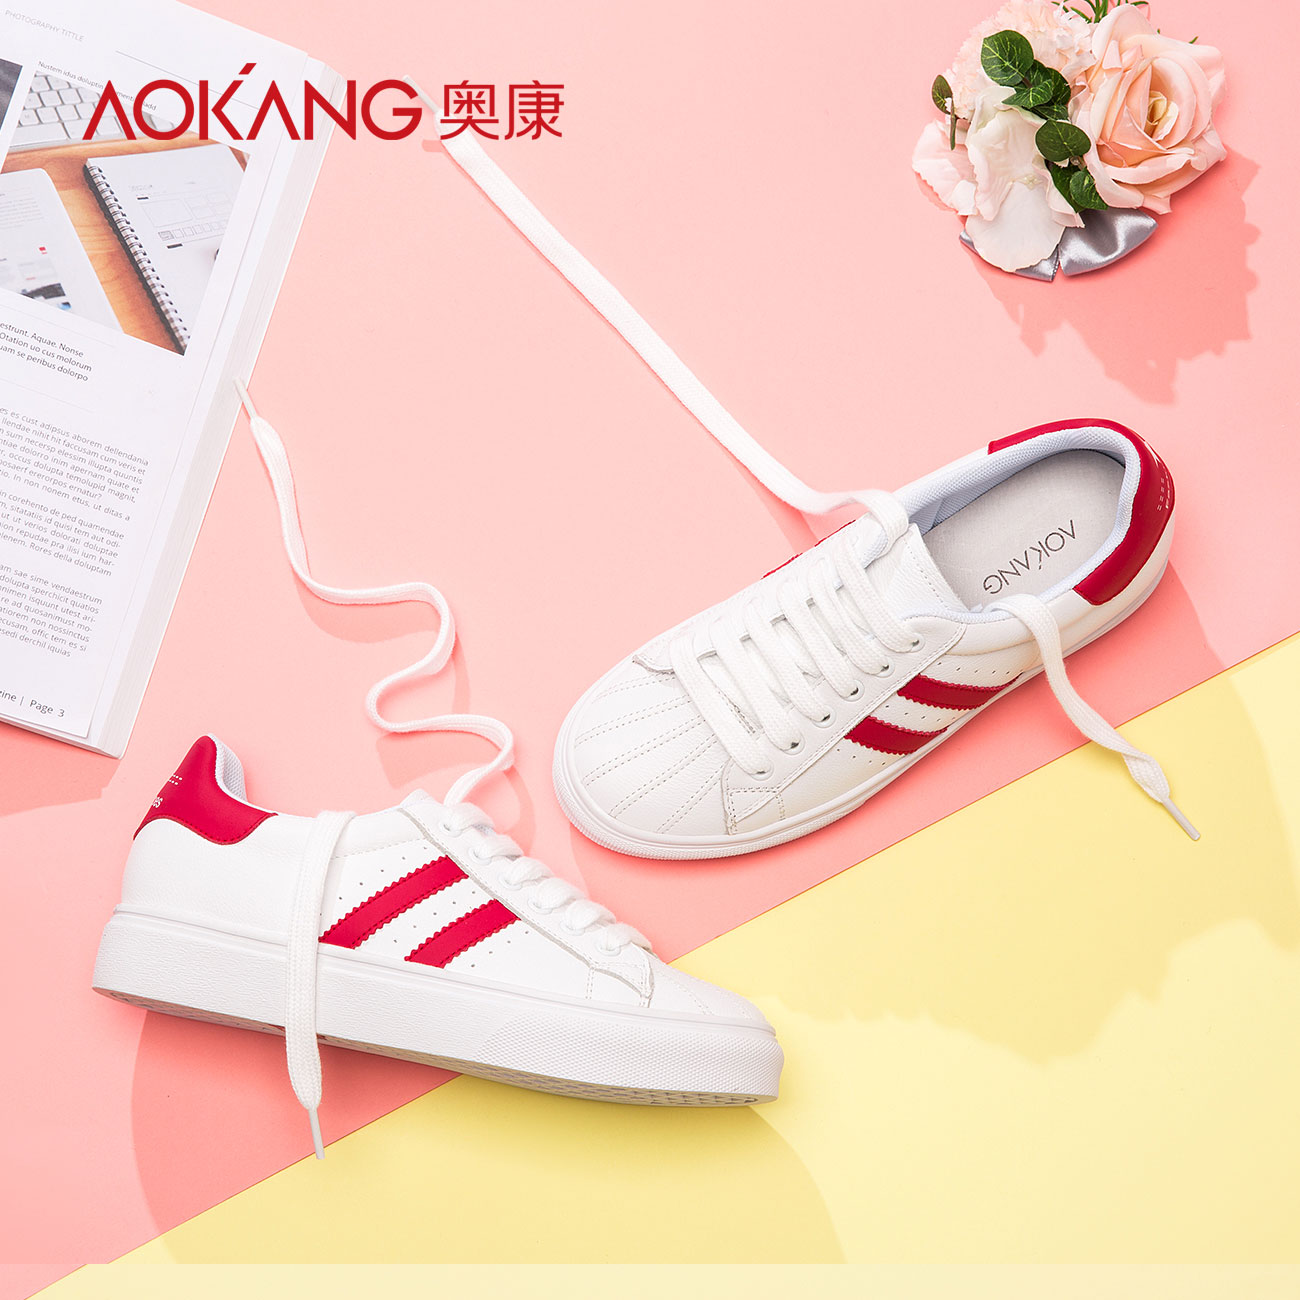 Aokang women's shoes 2018 new white shoes daily casual lace women's shoes leather fashion shoes